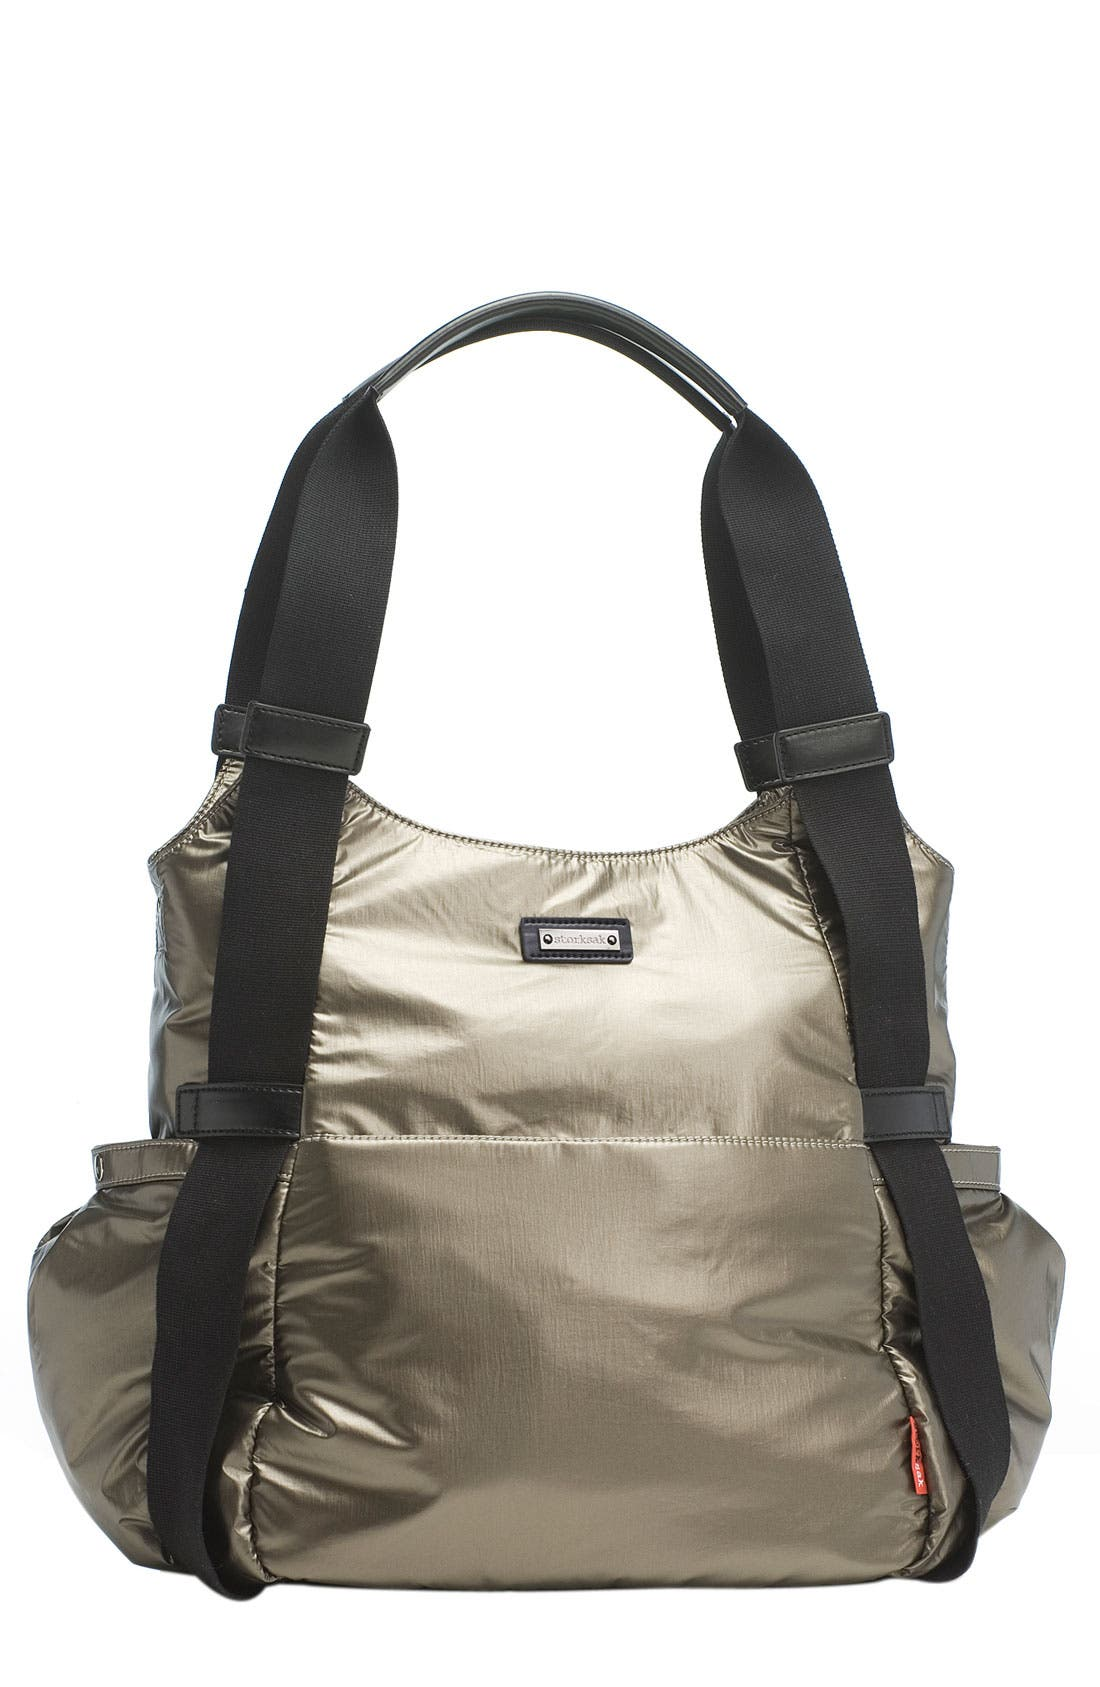 Alternate Image 1 Selected - Storksak 'Tania' Diaper Bag